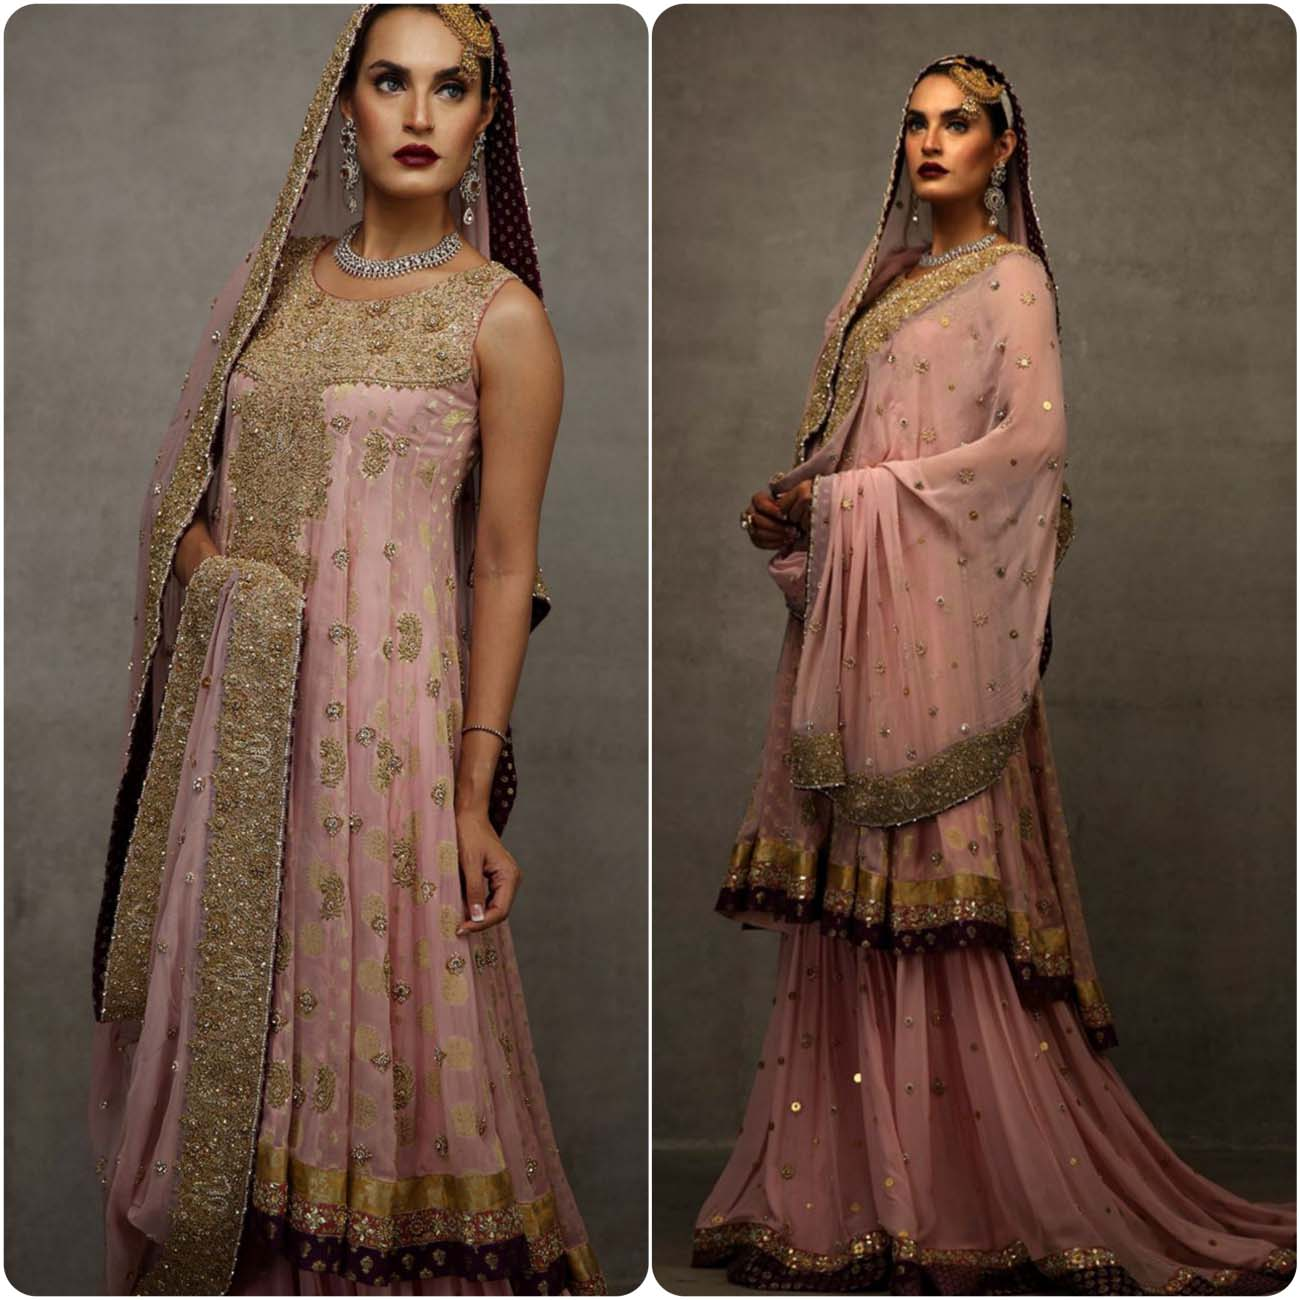 Deepak perwani Wedding Dresses Collection Fo Women 2016-2017...styloplanet (5)